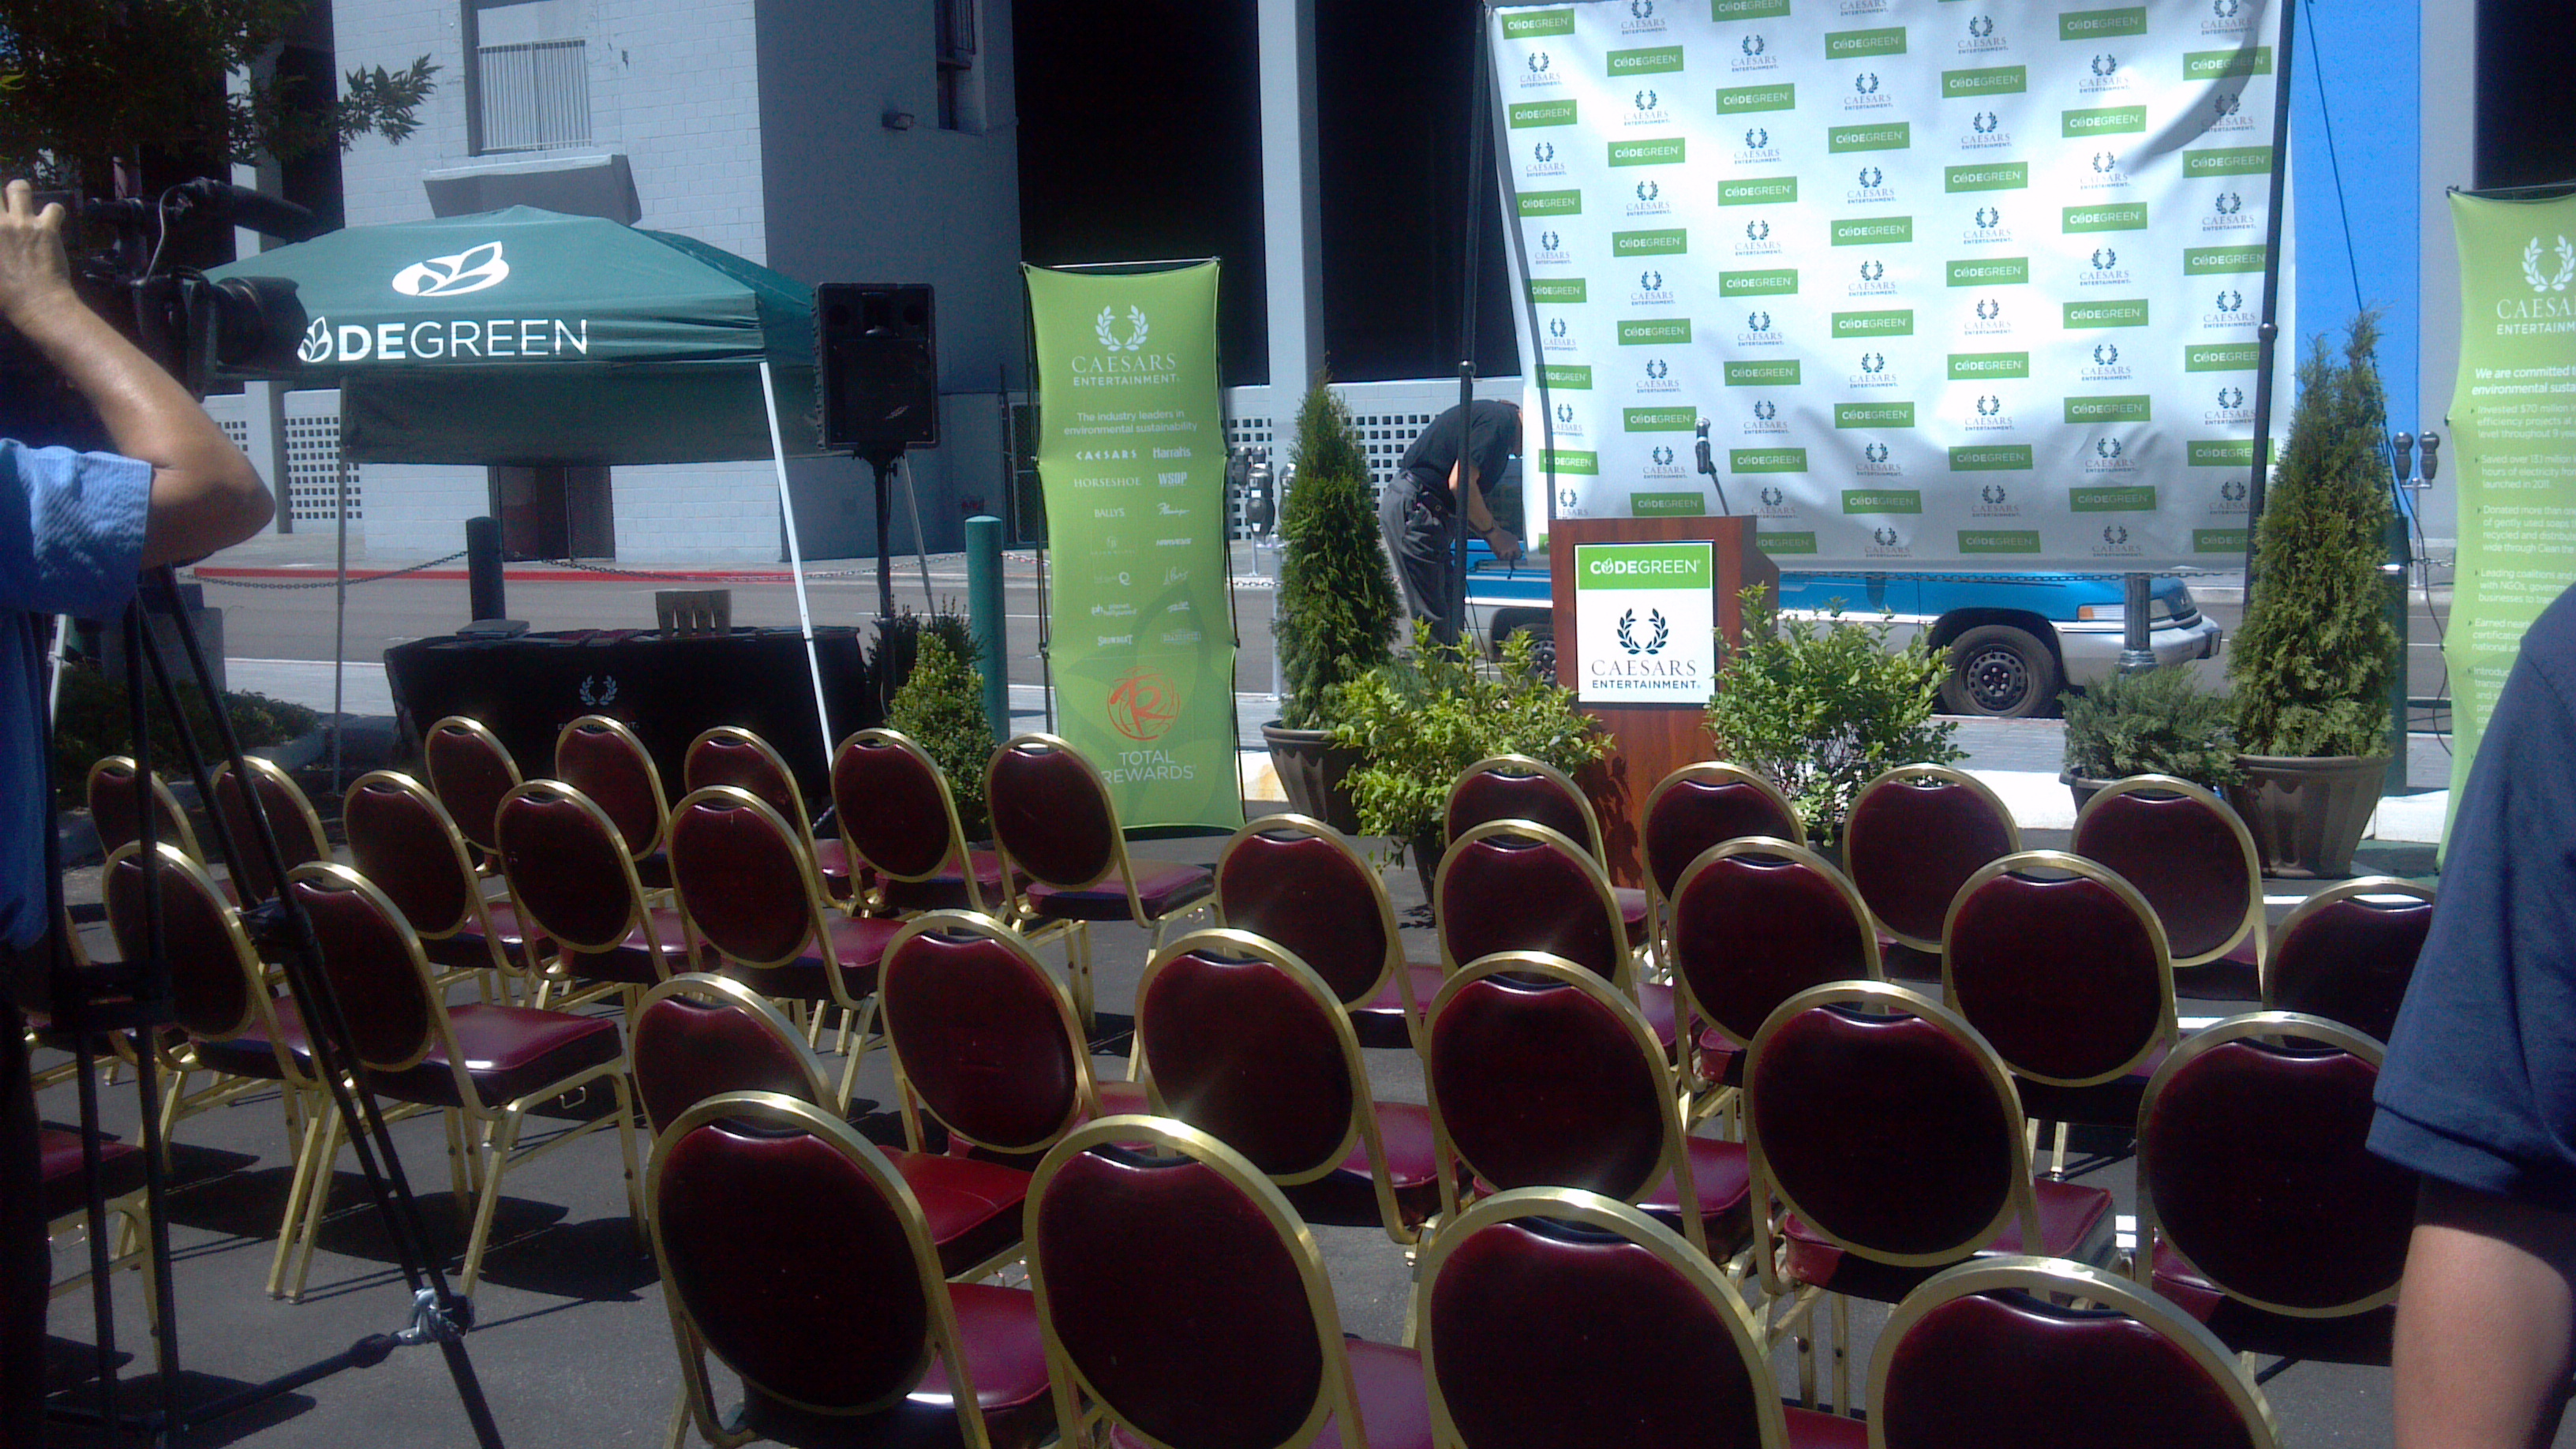 Caesars Entertainment unveils its CodeGreen EVSE installation project on August 16th at Harrah's Reno.